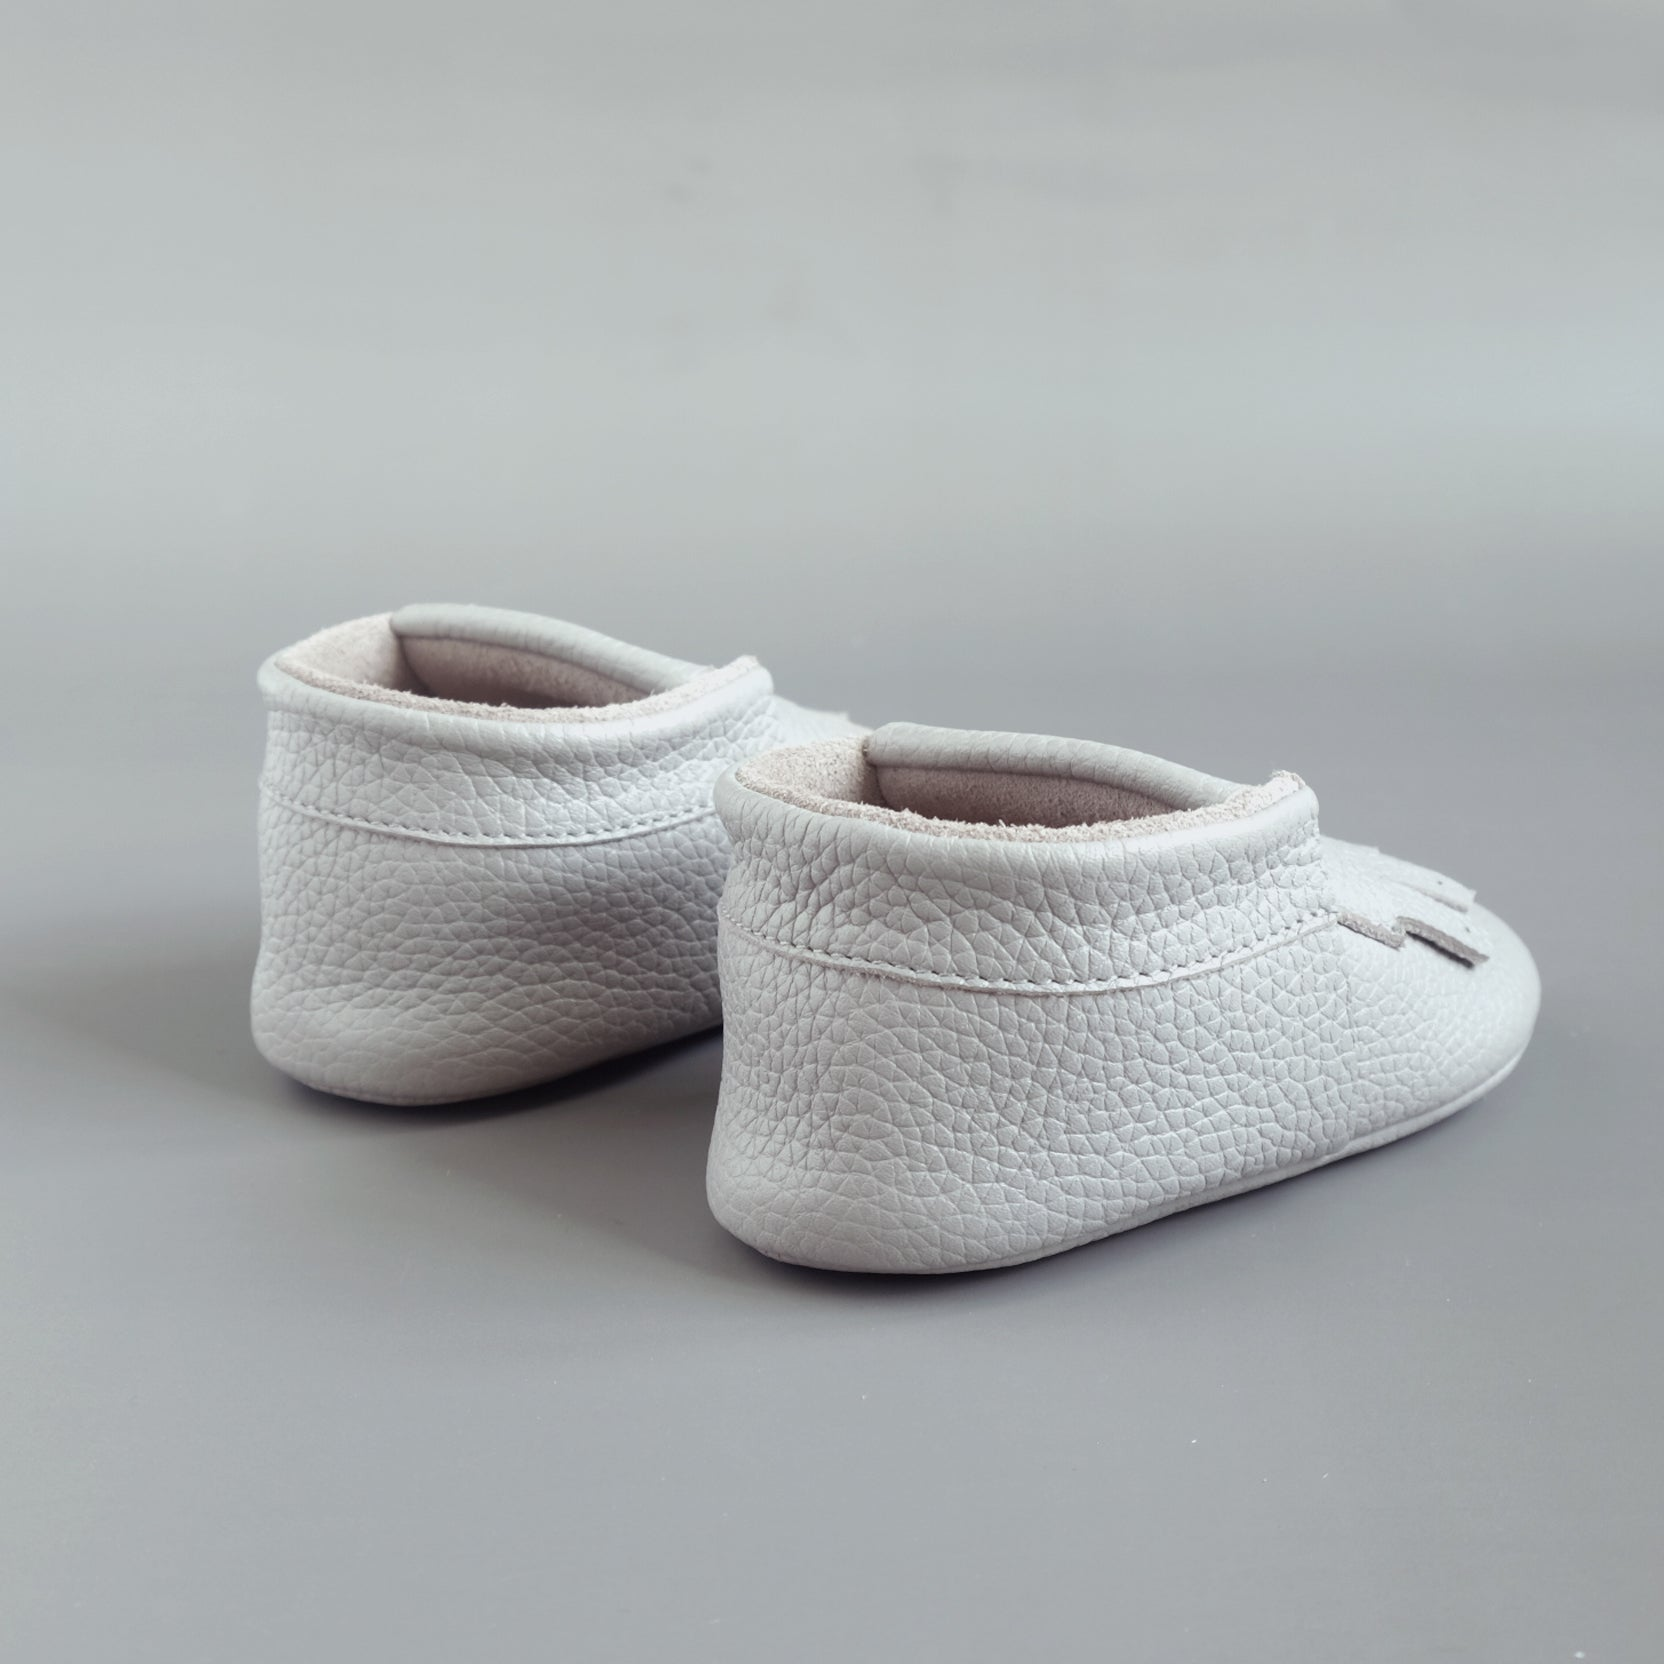 Tiera Moccasin in Stingrey